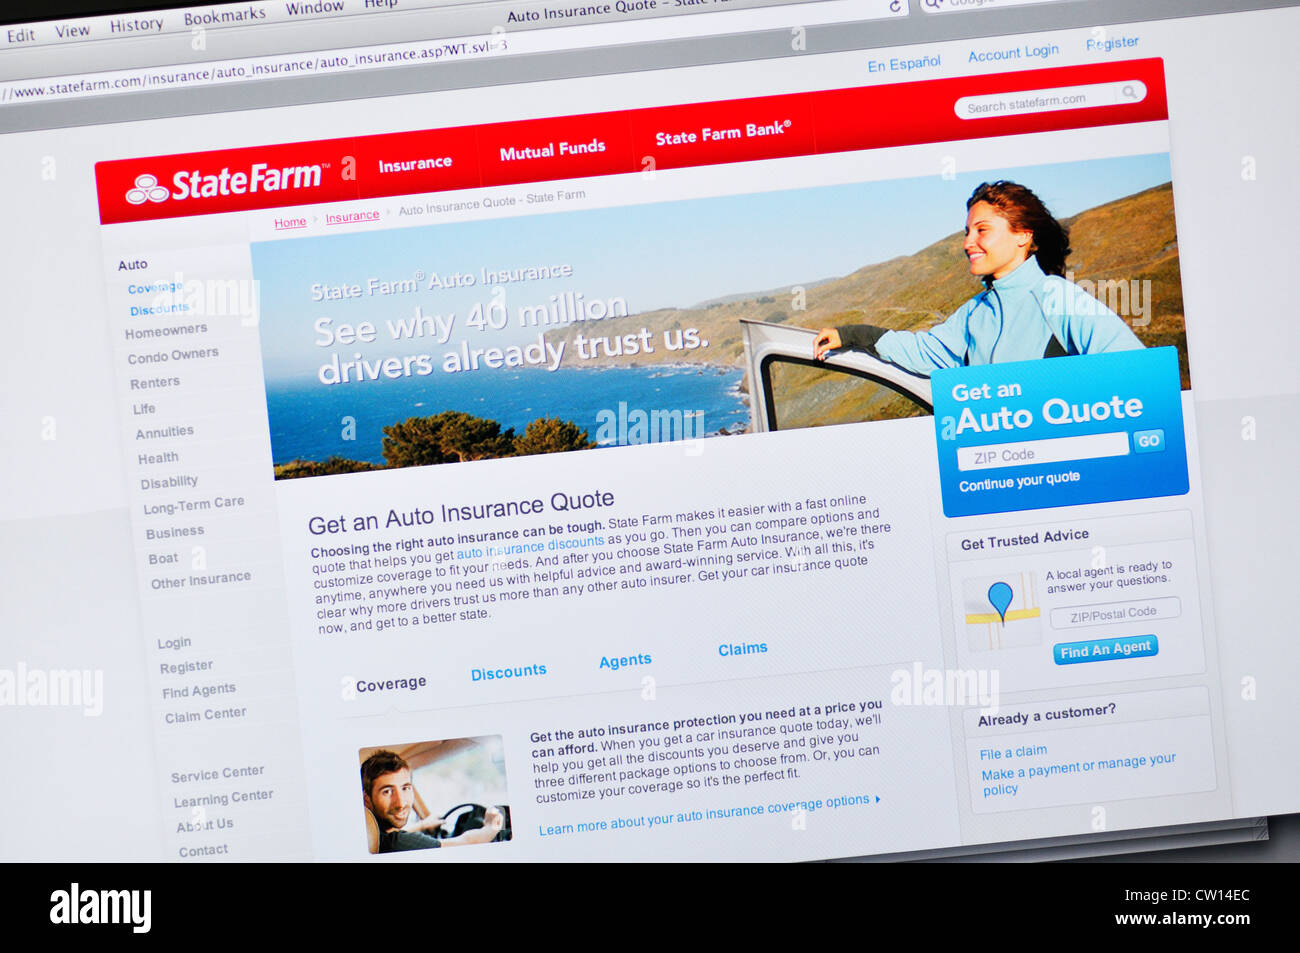 State Farm Online Quote Statefarm Insurance Website Stock Photo Royalty Free Image